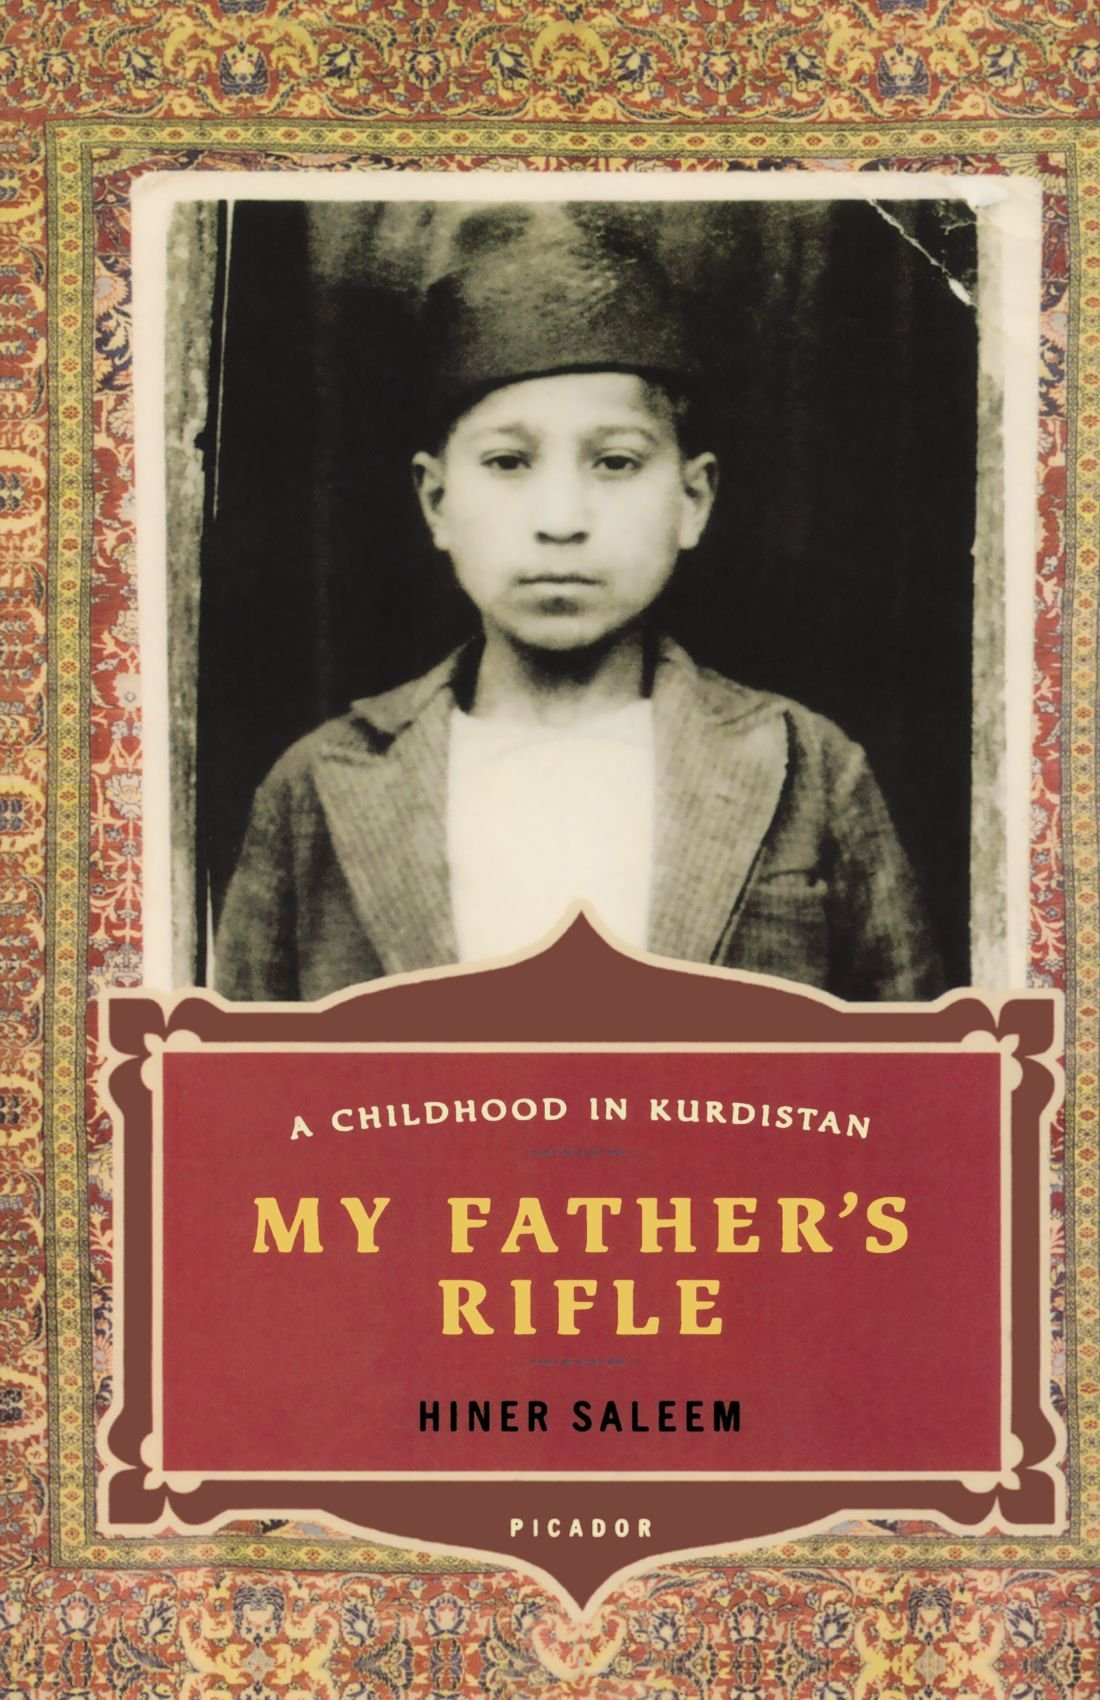 My Father's Rifle: A Childhood in Kurdistan: Hiner Saleem, Catherine  Temerson: 9780312424756: Amazon.com: Books